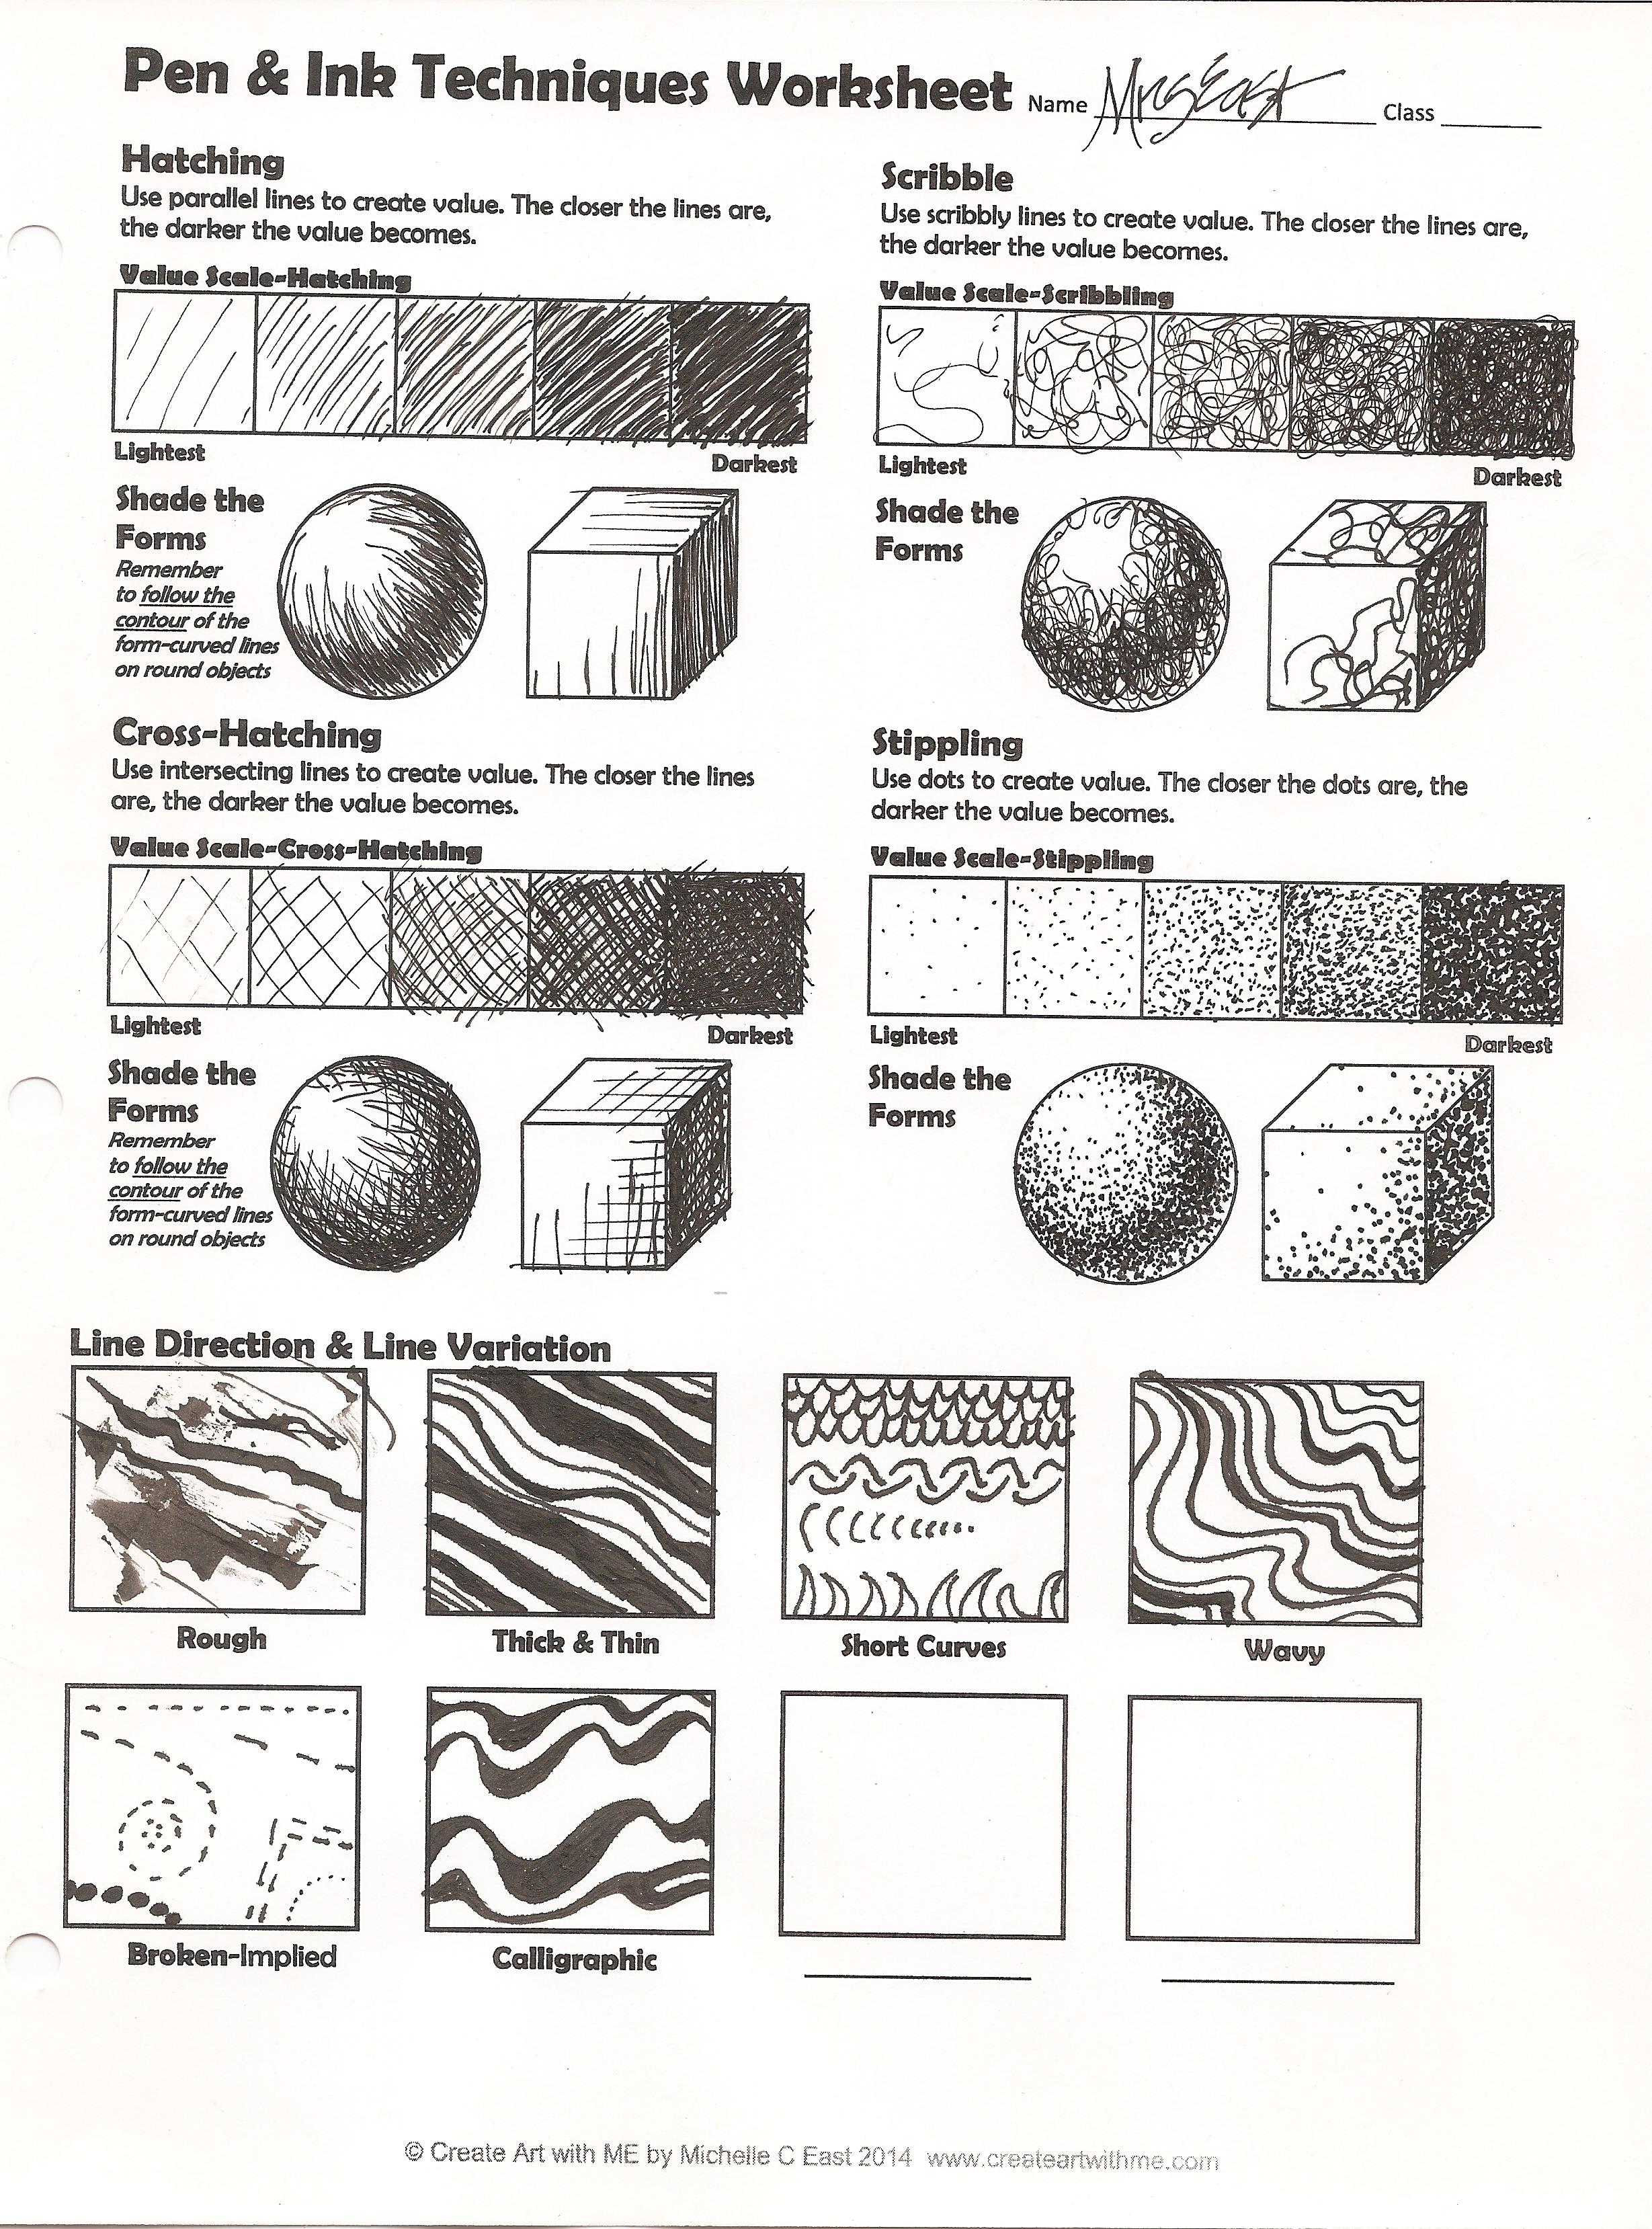 Line Drawing Worksheet : Pen ink techniques lesson plan worksheet create art